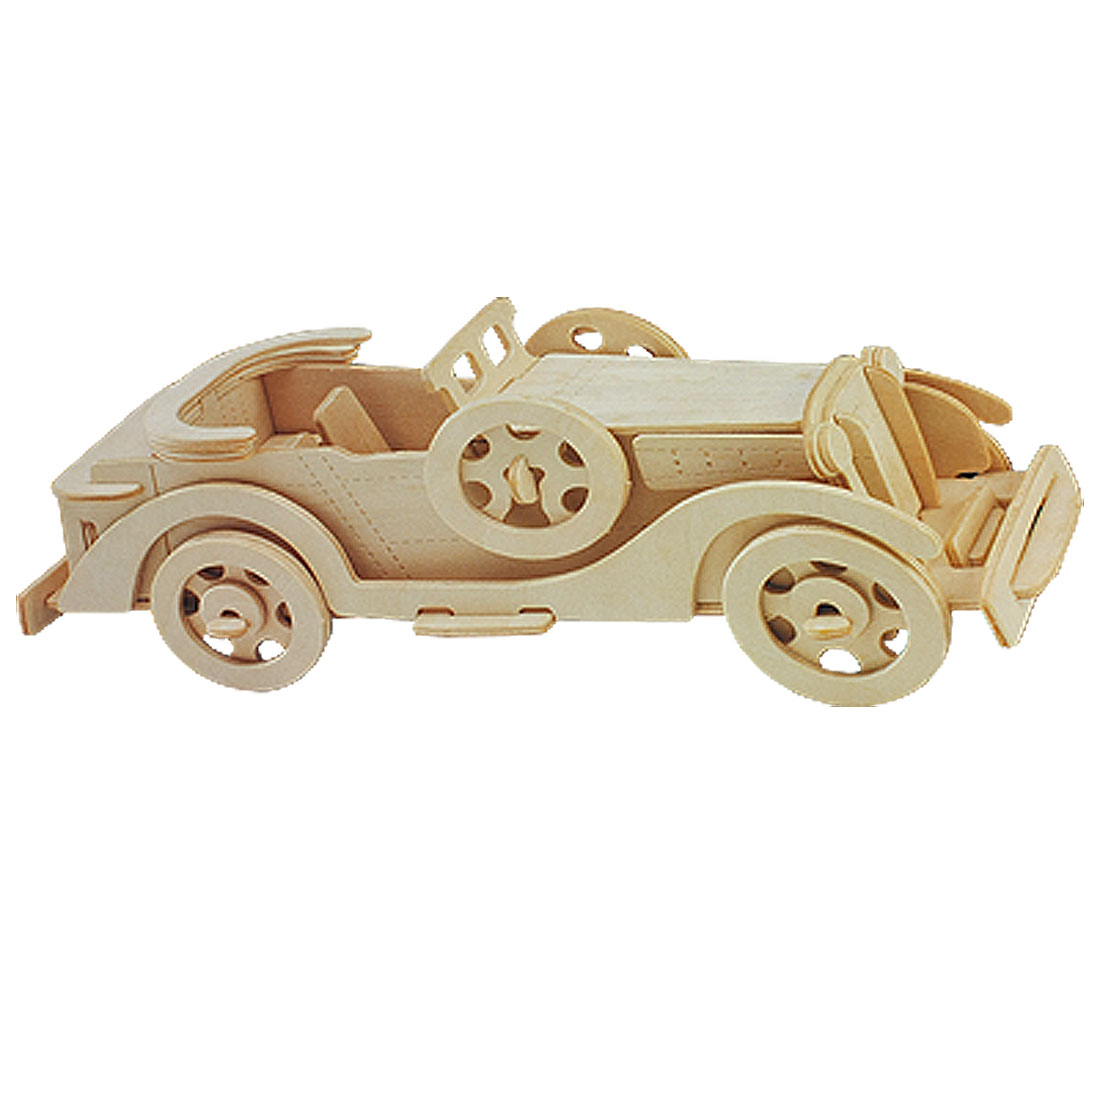 Packard Twelve Model Puzzled 3D DIY Assemble Wooden Kit for Child